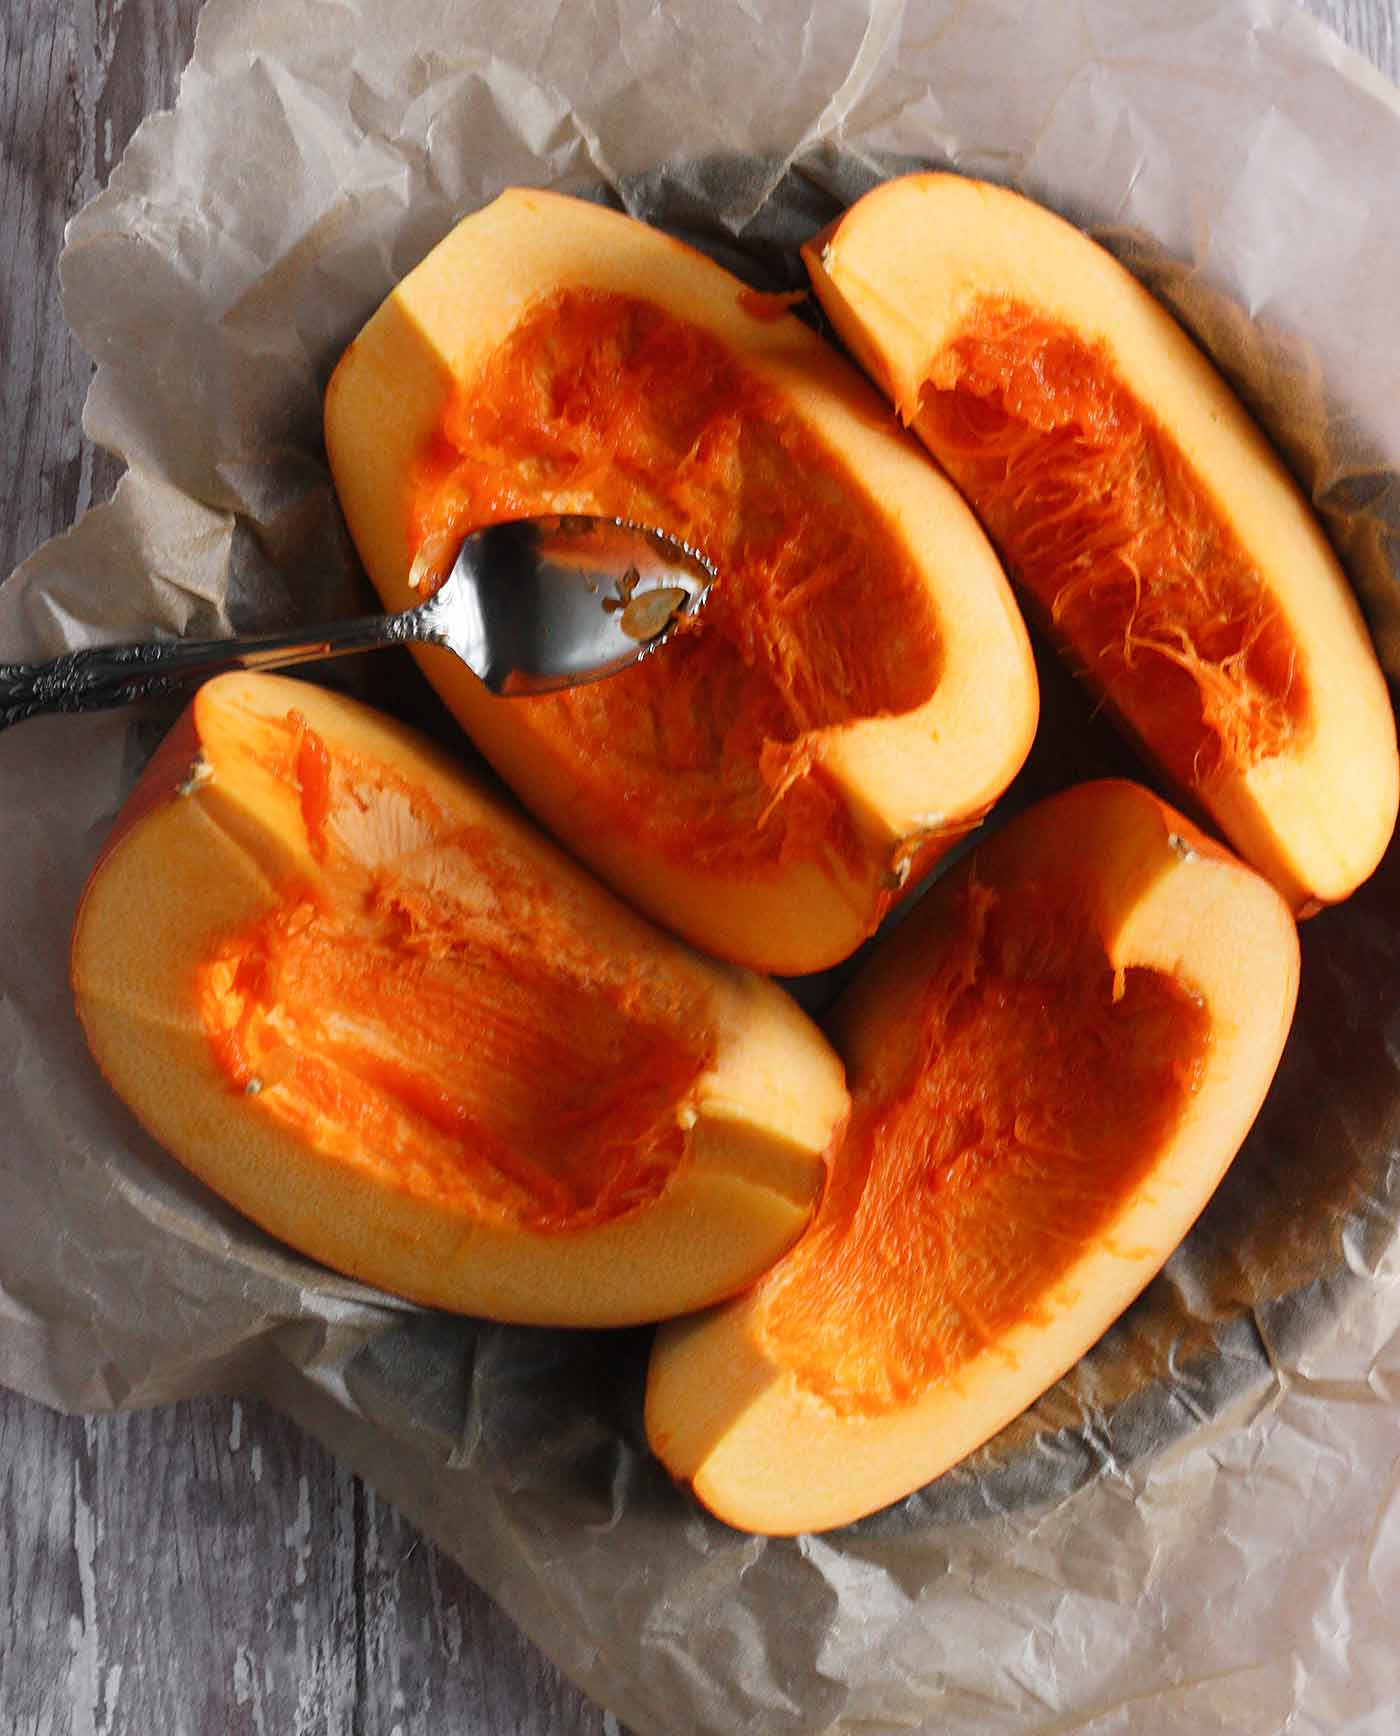 Sliced pumpkin, ready to be roasted for pumpkin puree